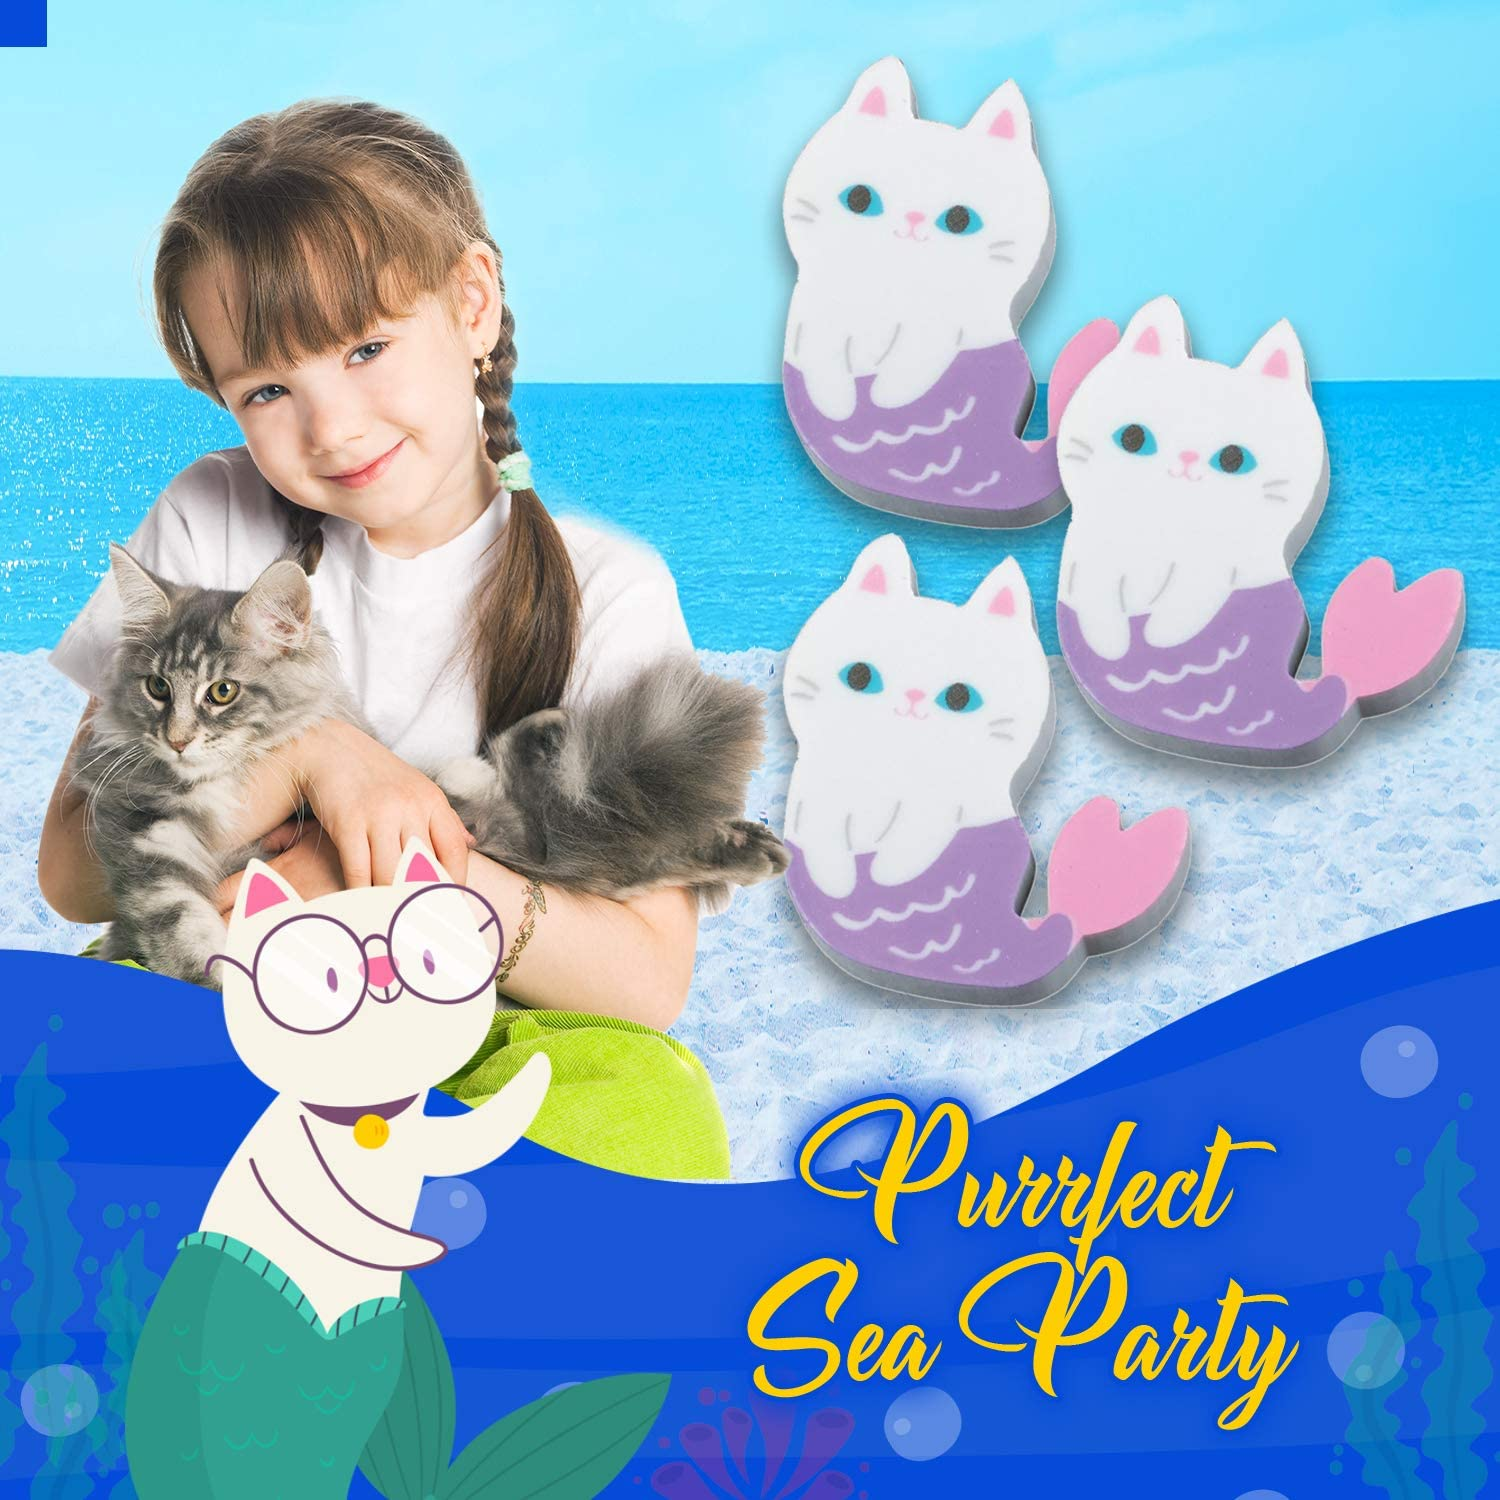 12 Count Party Favors for Kids U.S Themed Toys Supplies Kids Birthday Party Toy Purmaid Erasers